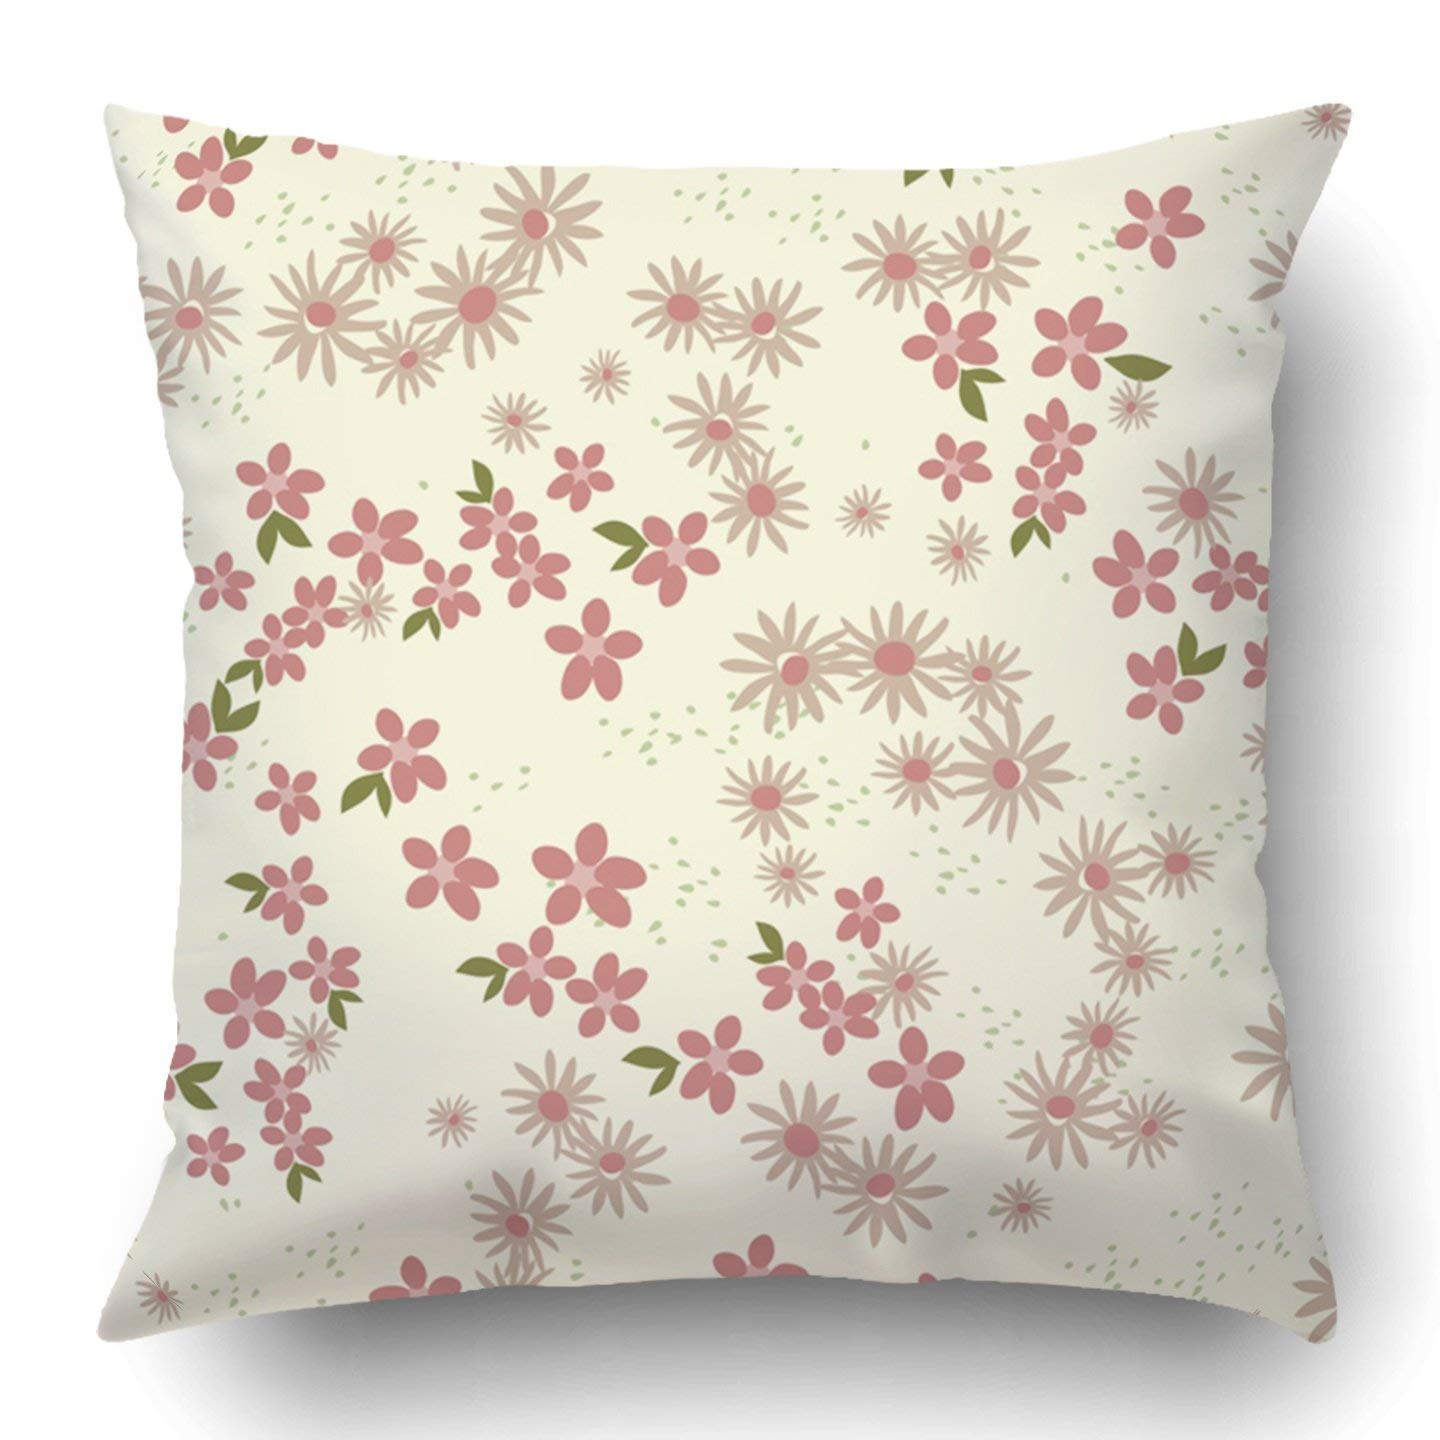 WOPOP Colorful Flower Retro Ditsy Floral Green Babies Breath Bouquet Branch Bud Classic Cream Pillowcase 18x18 inch